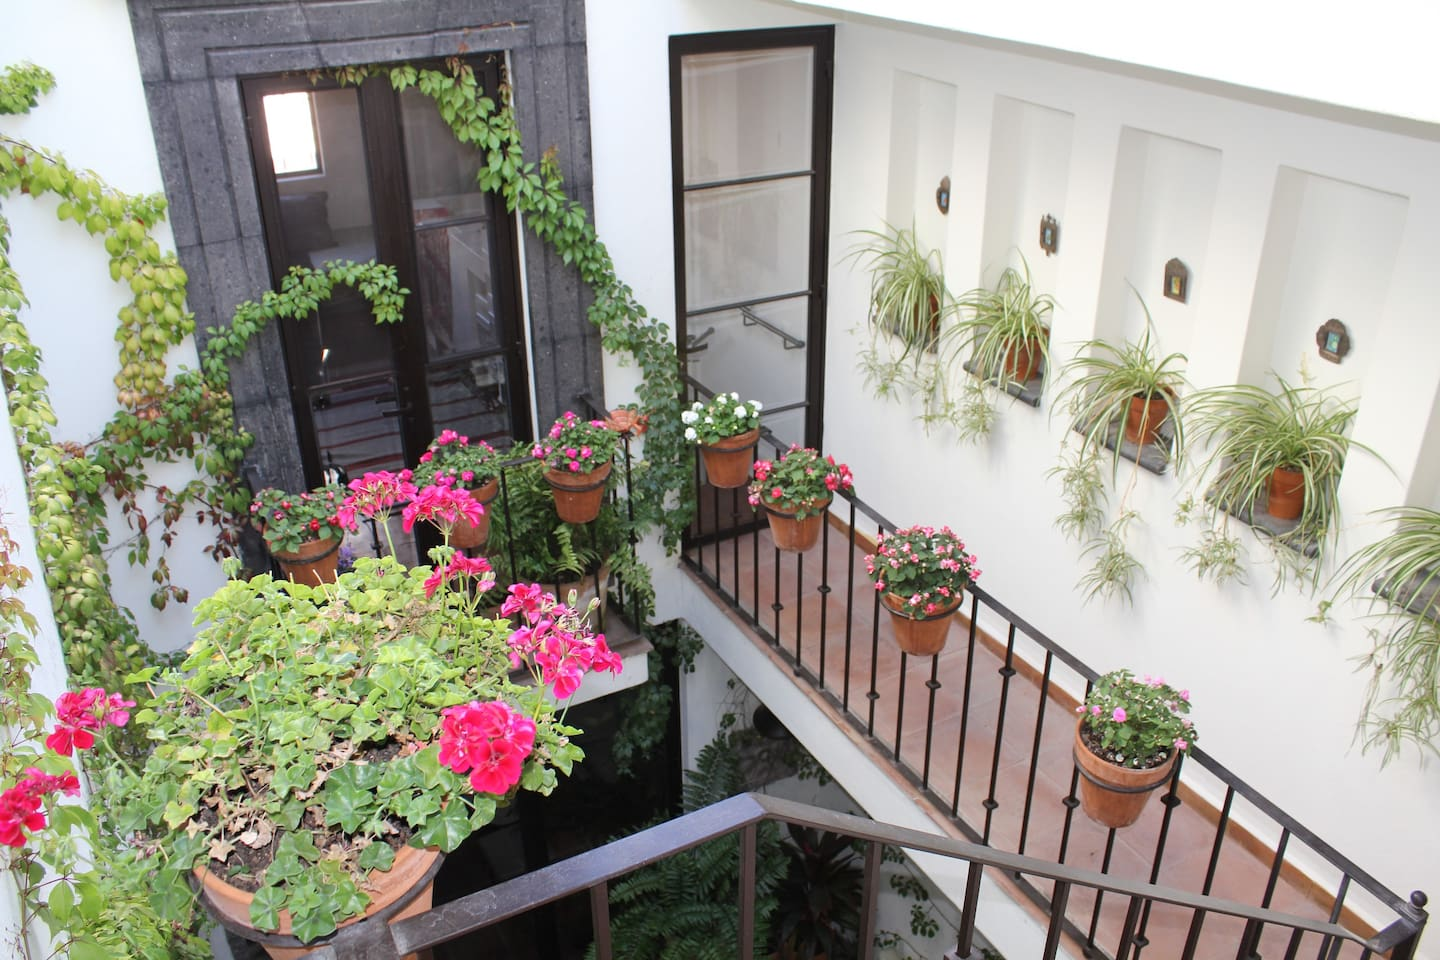 Townhouse in the Centro with open-air atrium, terraces, and clean, spare, beautiful design.